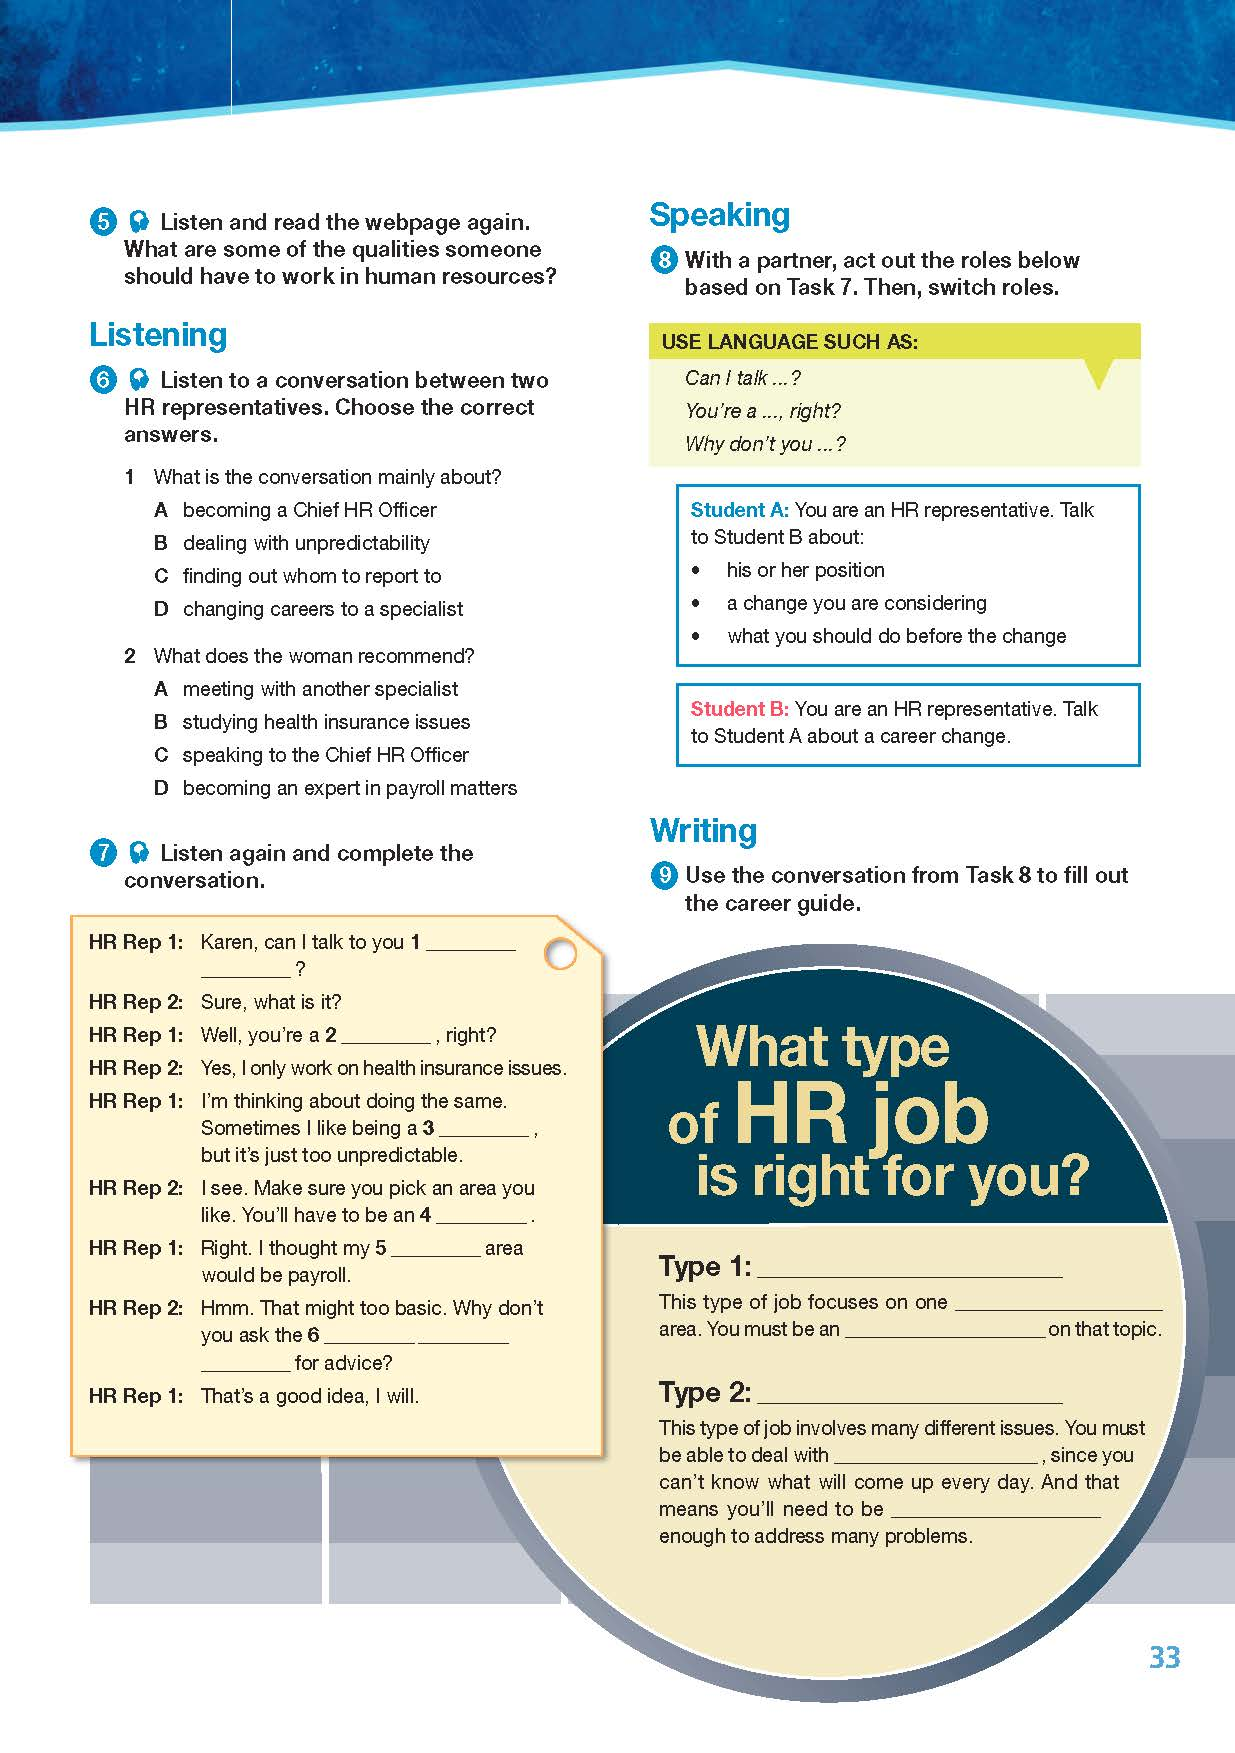 ESP English for Specific Purposes - Career Paths: Human Resources - Sample Page 4